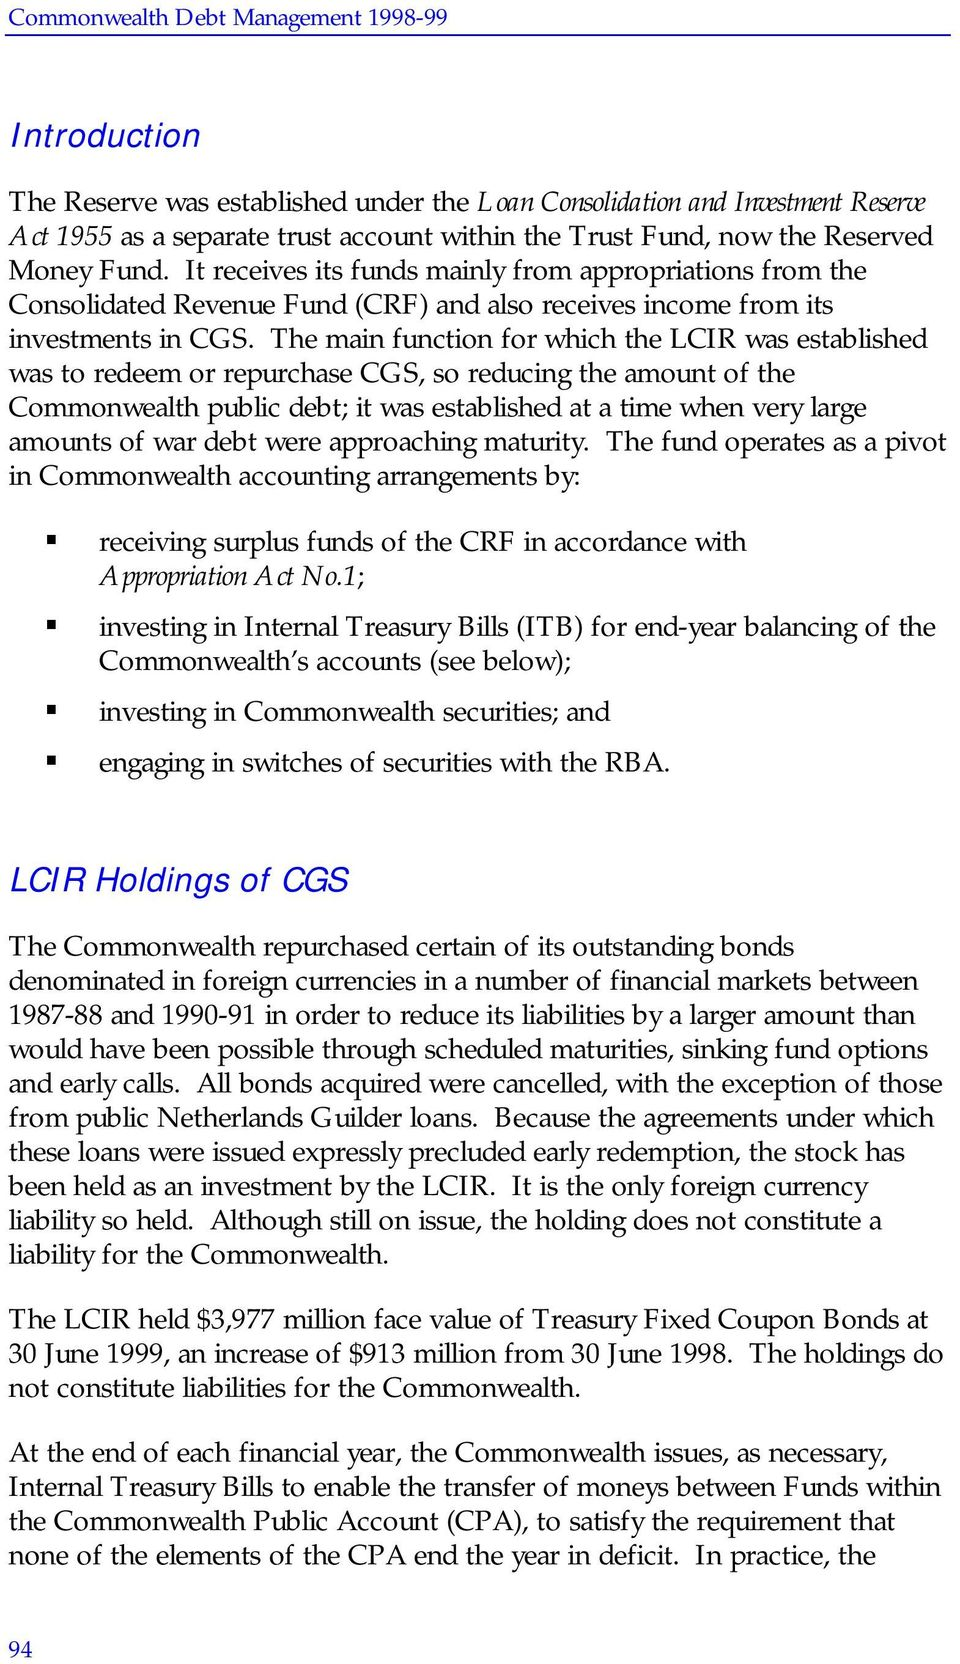 The main function for which the LCIR was established was to redeem or repurchase CGS, so reducing the amount of the Commonwealth public debt; it was established at a time when very large amounts of